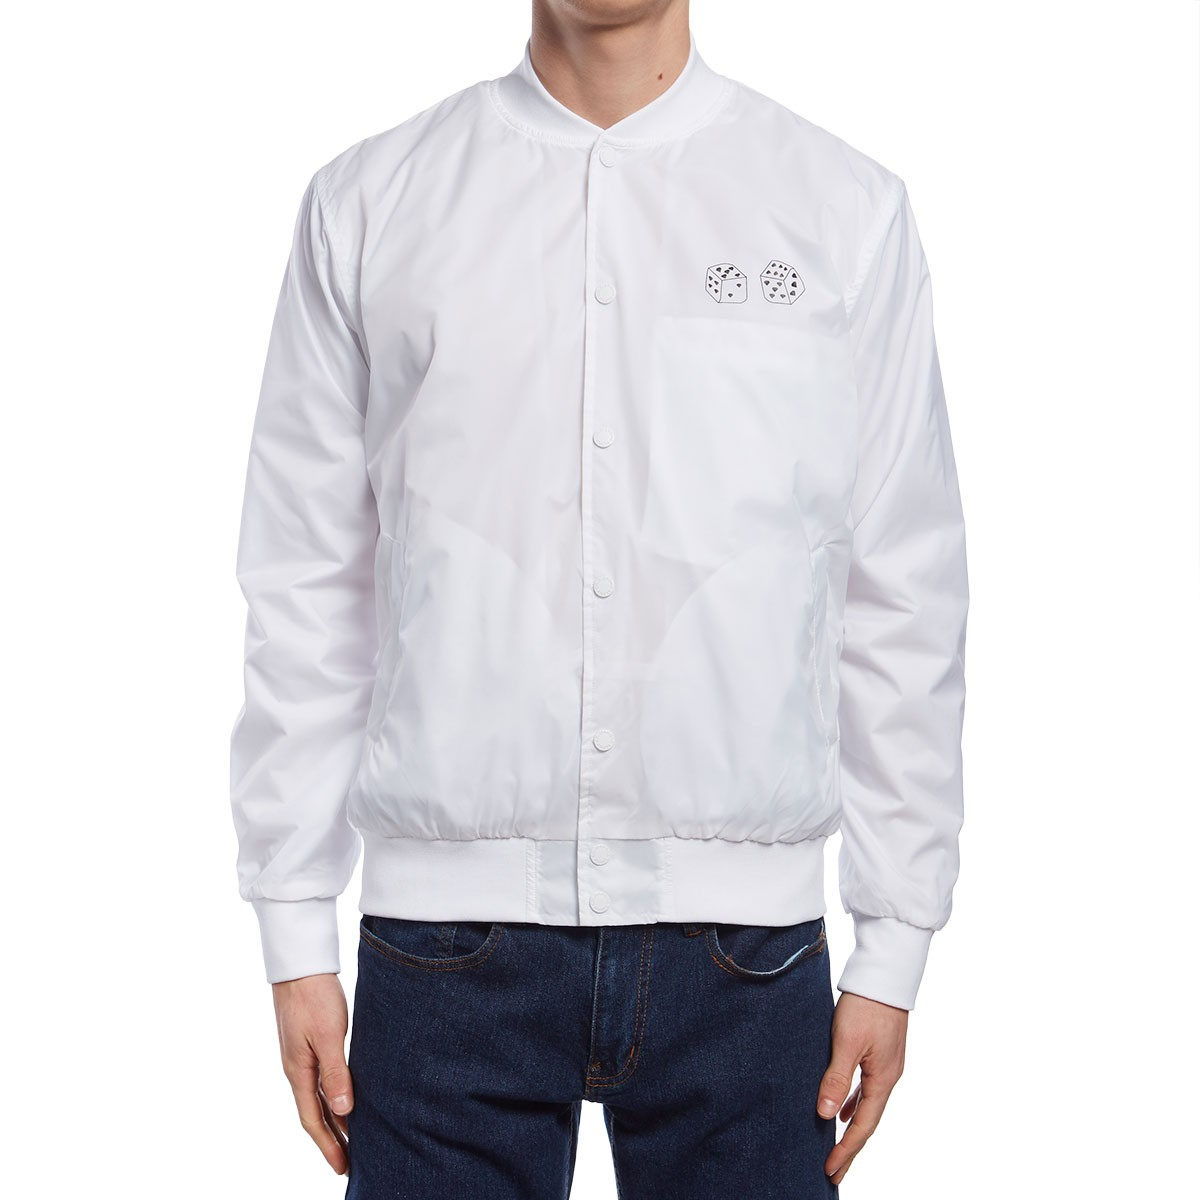 aa3d67dec Diamond Supply Co. Club Varsity Jacket - White